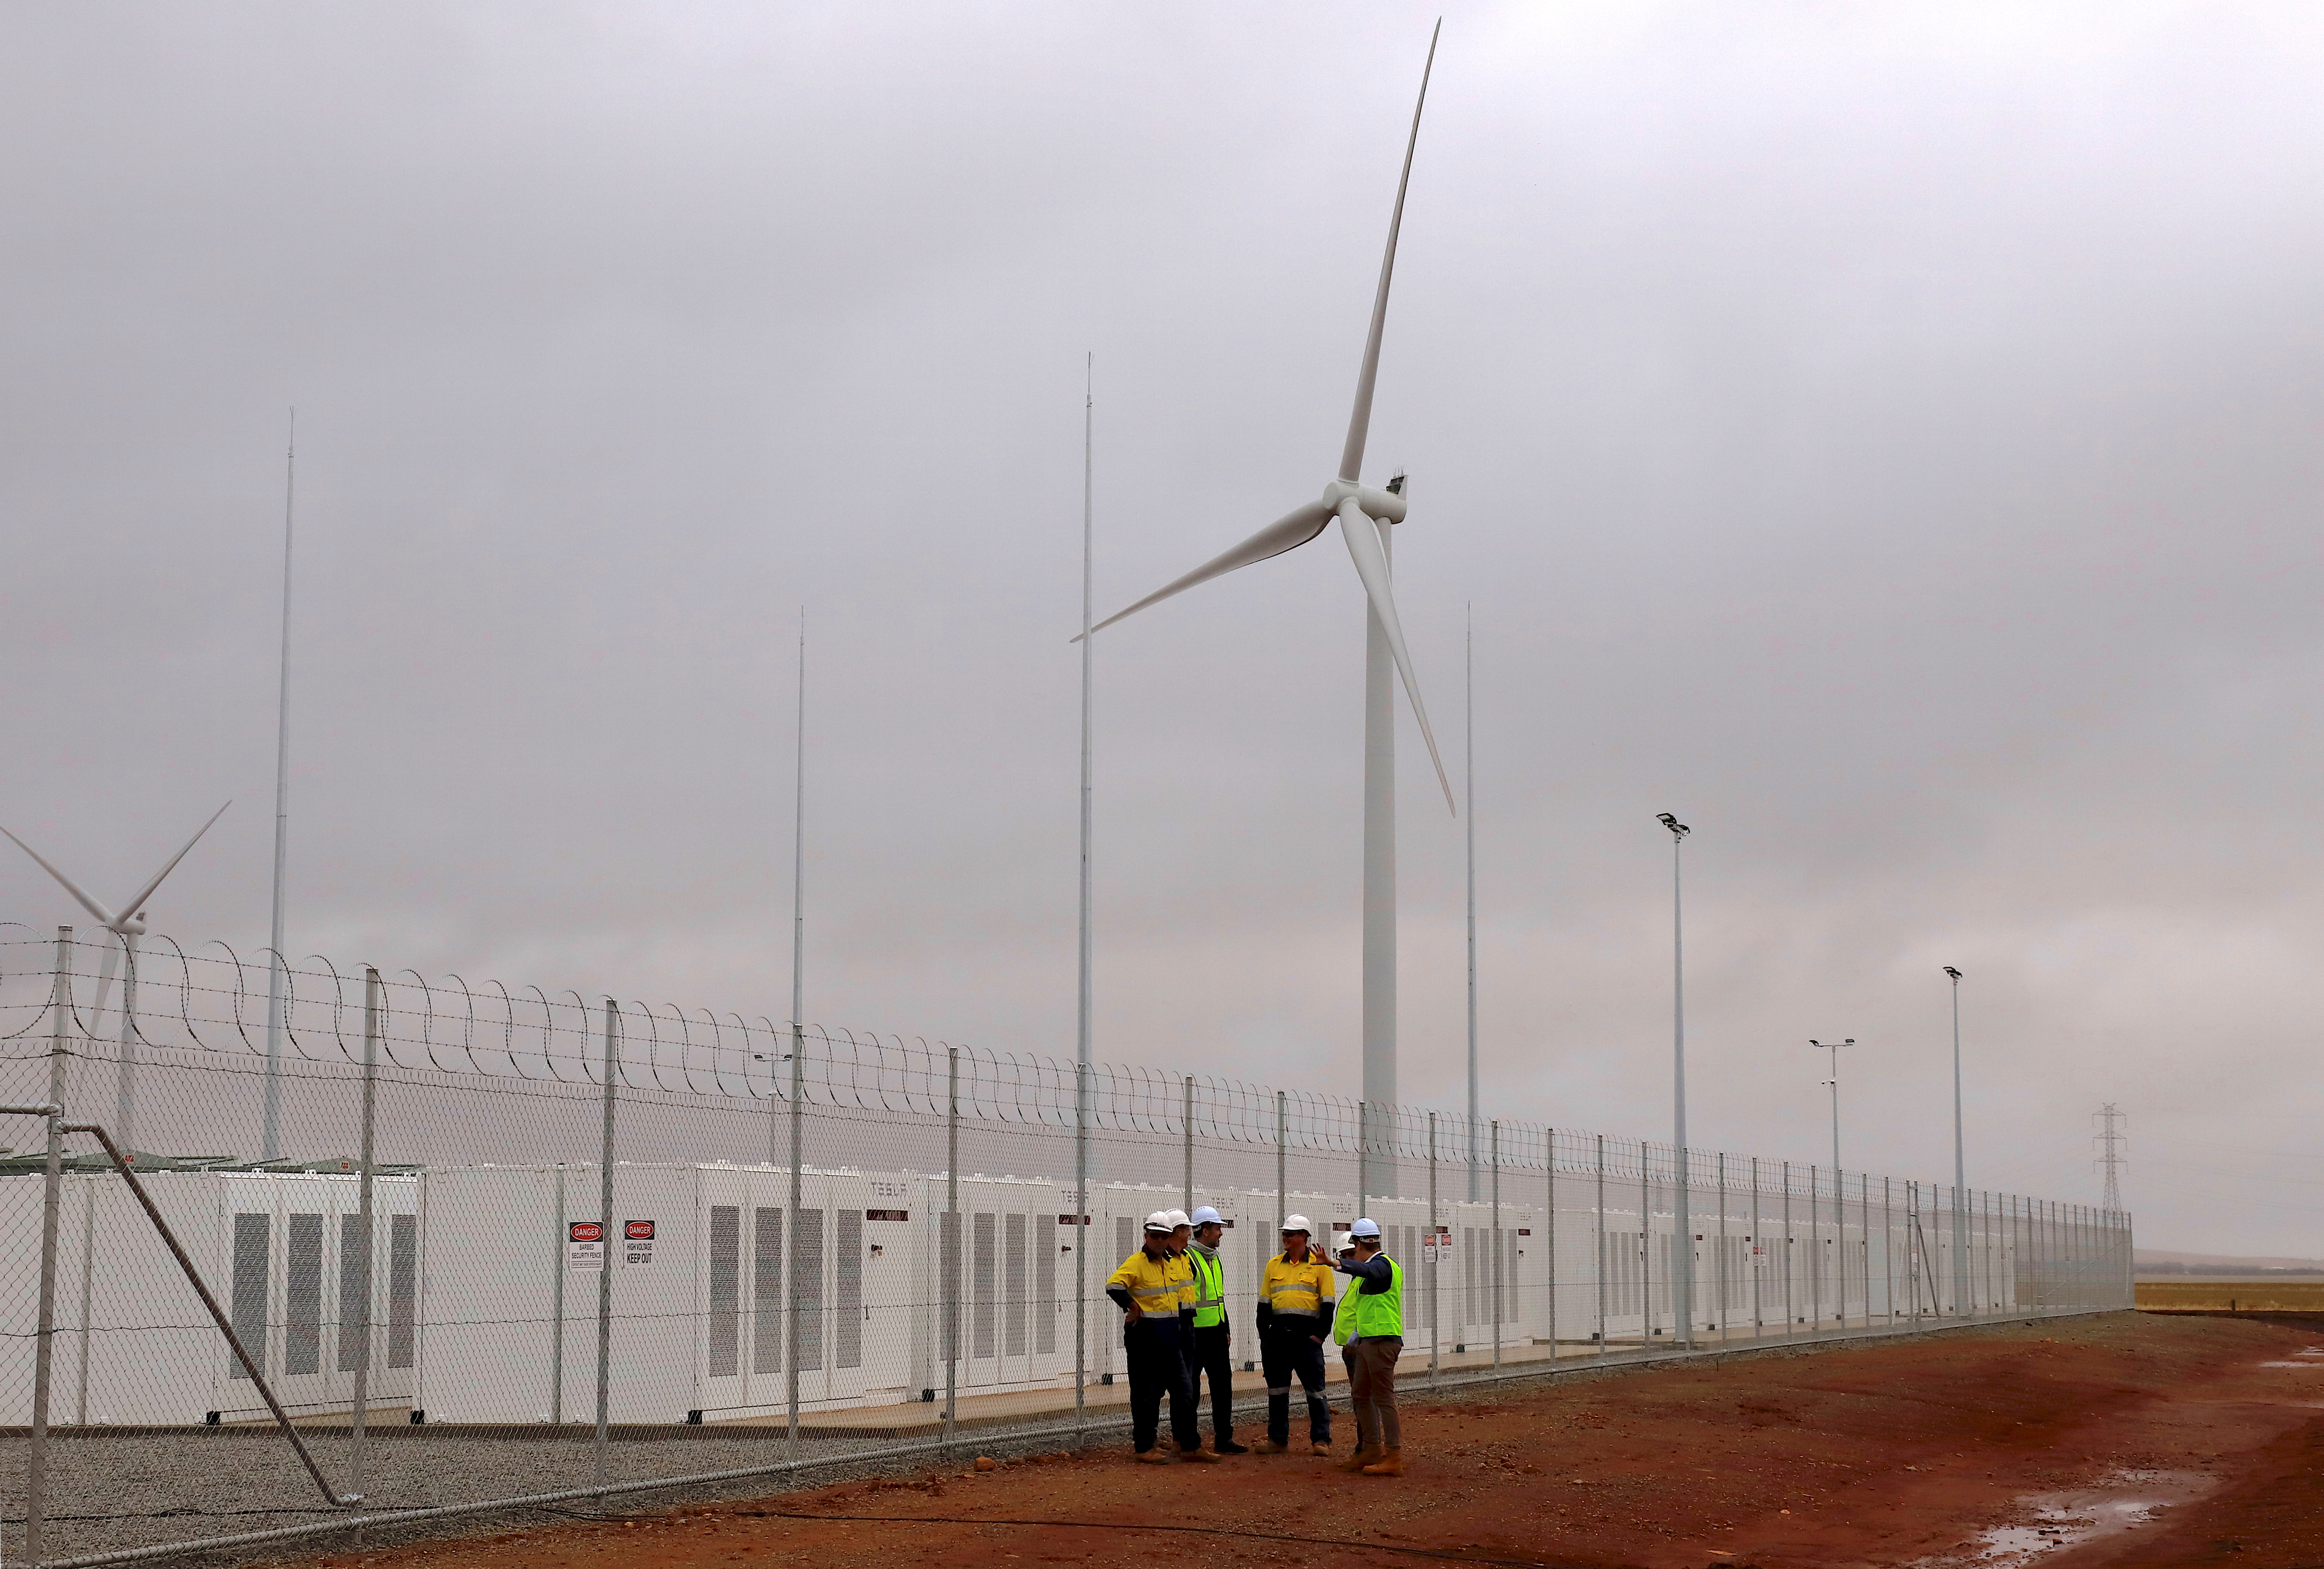 Officials and workers gather outside the compound housing the Hornsdale Power Reserve, featuring the world's largest lithium ion battery made by Tesla, during the official launch near the South Australian town of Jamestown, in Australia, December 1, 2017. REUTERS/David Gray - RC1D99DC5C00